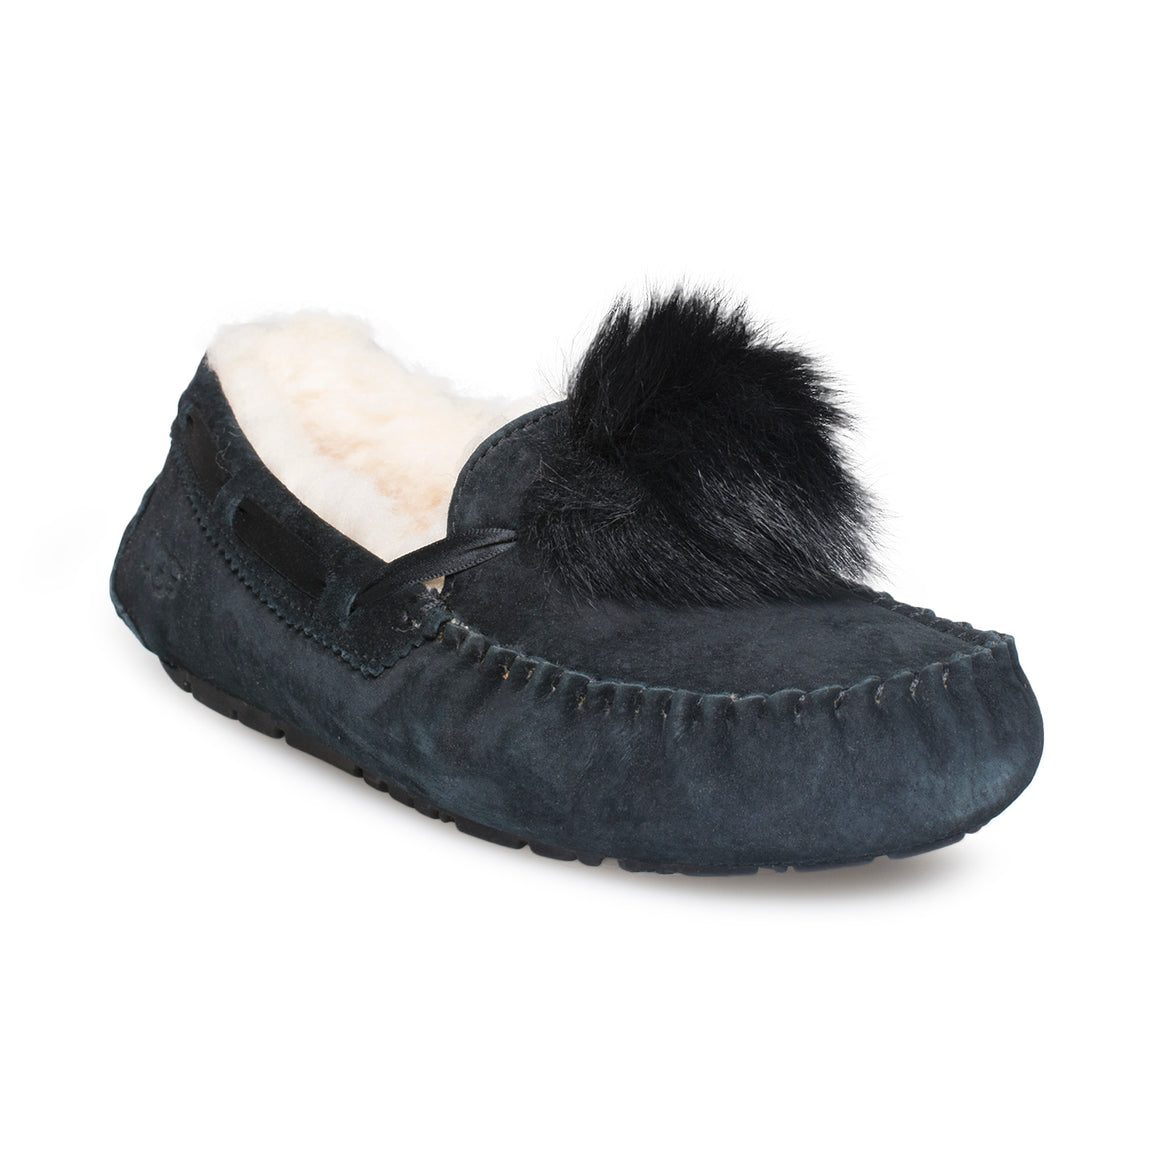 UGG Dakota Pom Pom Black Slippers